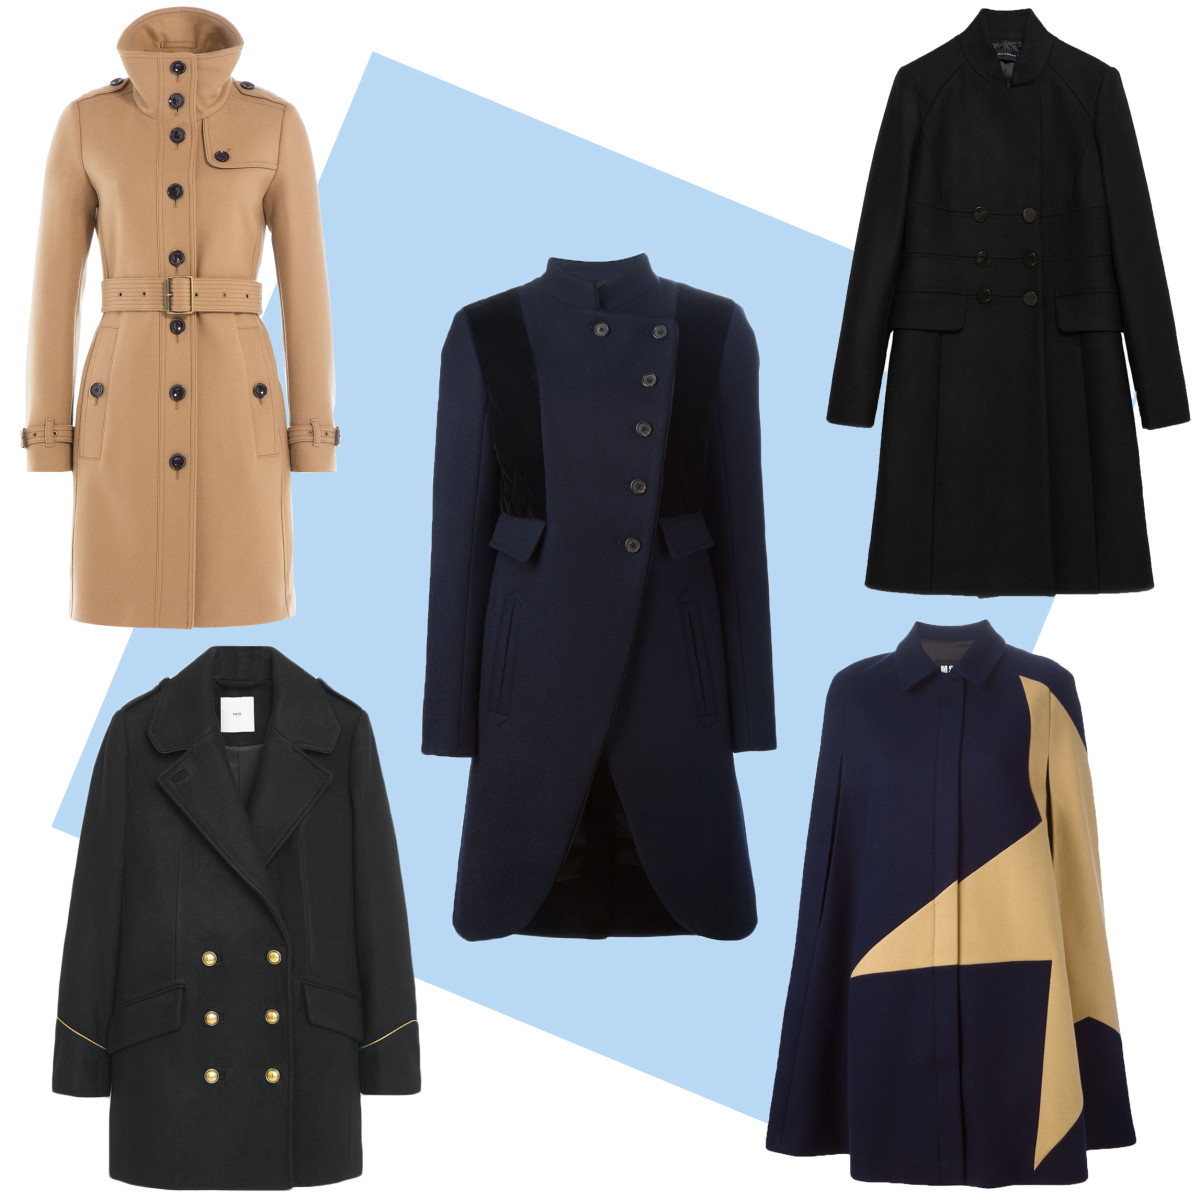 TOP LEFT: Burberry Brit virgin wool twill trench coat with cashmere, $1,235, available at Stylebop; CENTER: Marc by Marc Jacobs military coat, $1,195.87, available at Farfetch; TOP RIGHT: Zara tailored coat, $189, available at Zara; BOTTOM LEFT: Mango double-breasted wool coat, $129.99, available at Mango; BOTTOM RIGHT: MSGM two-tone cape, $729.39, available at Farfetch.